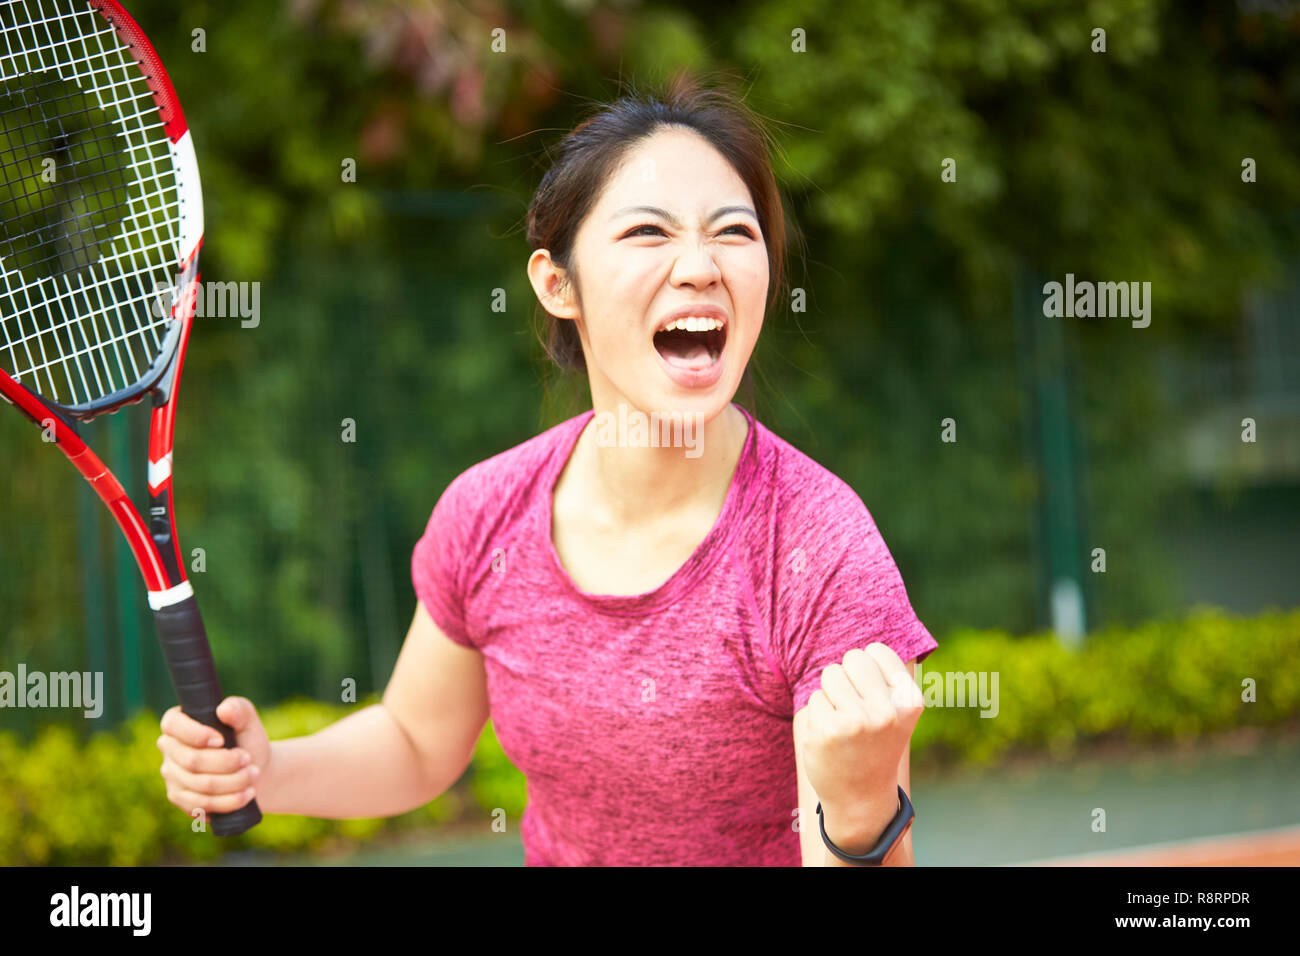 young asian girl female tennis player celebrating after scoring a point Stock Photo